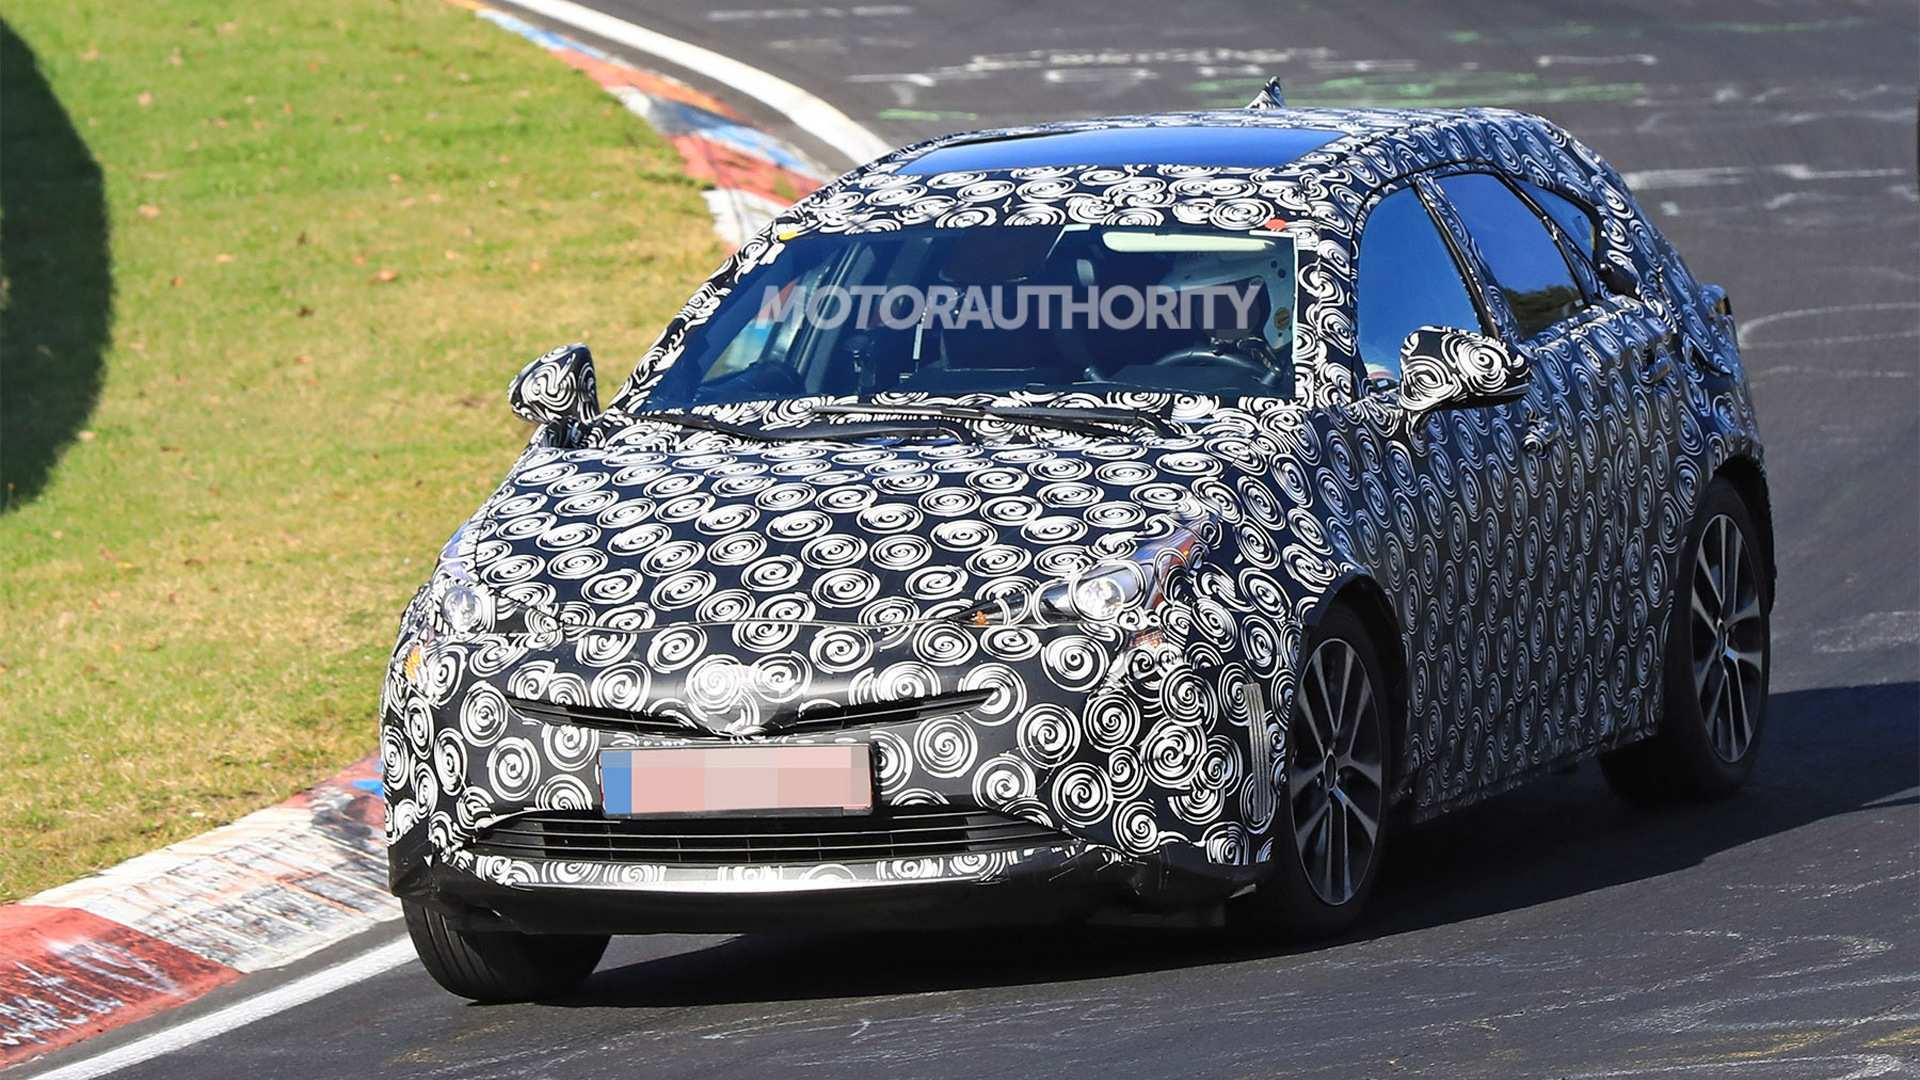 56 Gallery of 2020 Spy Shots Toyota Prius Exterior for 2020 Spy Shots Toyota Prius